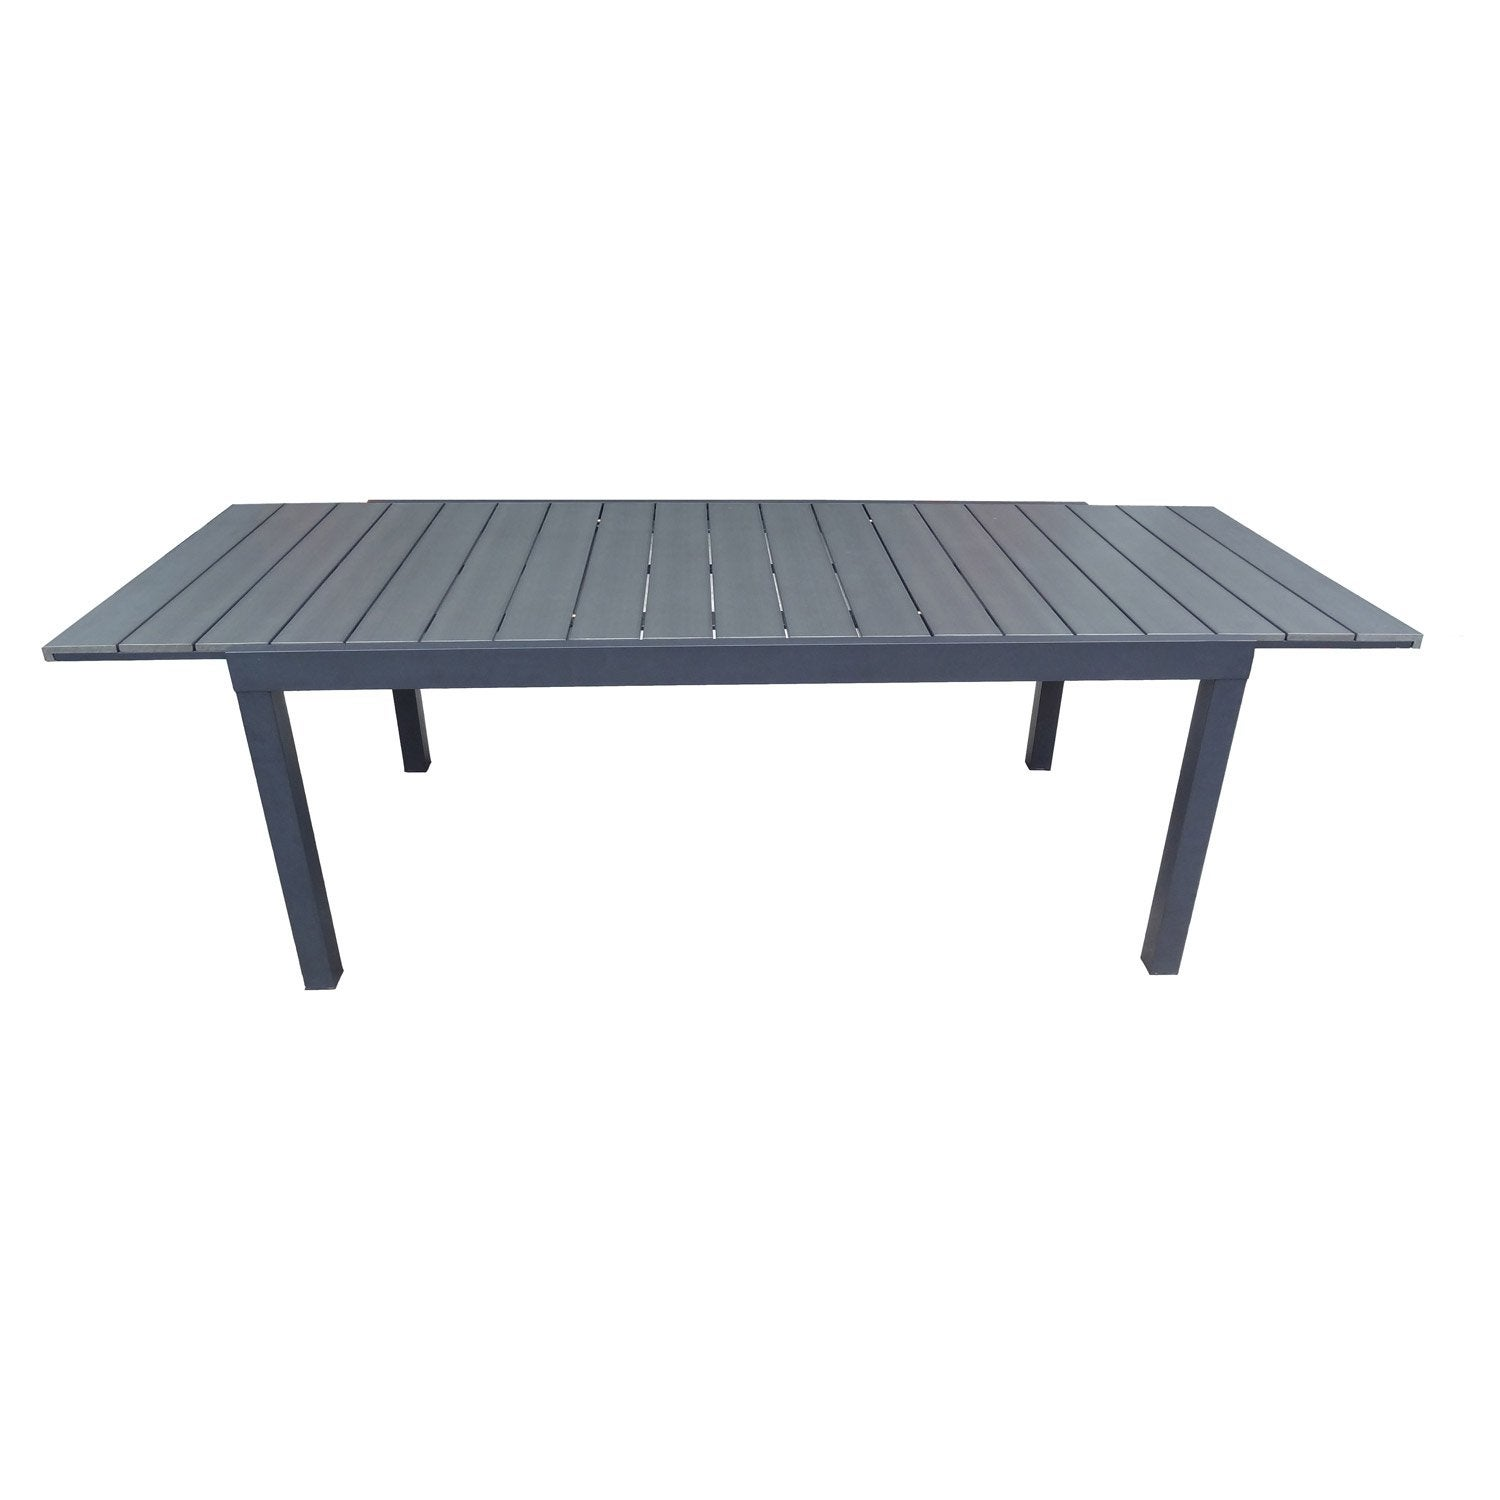 Table de jardin naterial pratt rectangulaire gris leroy - Table de jardin en alu ...